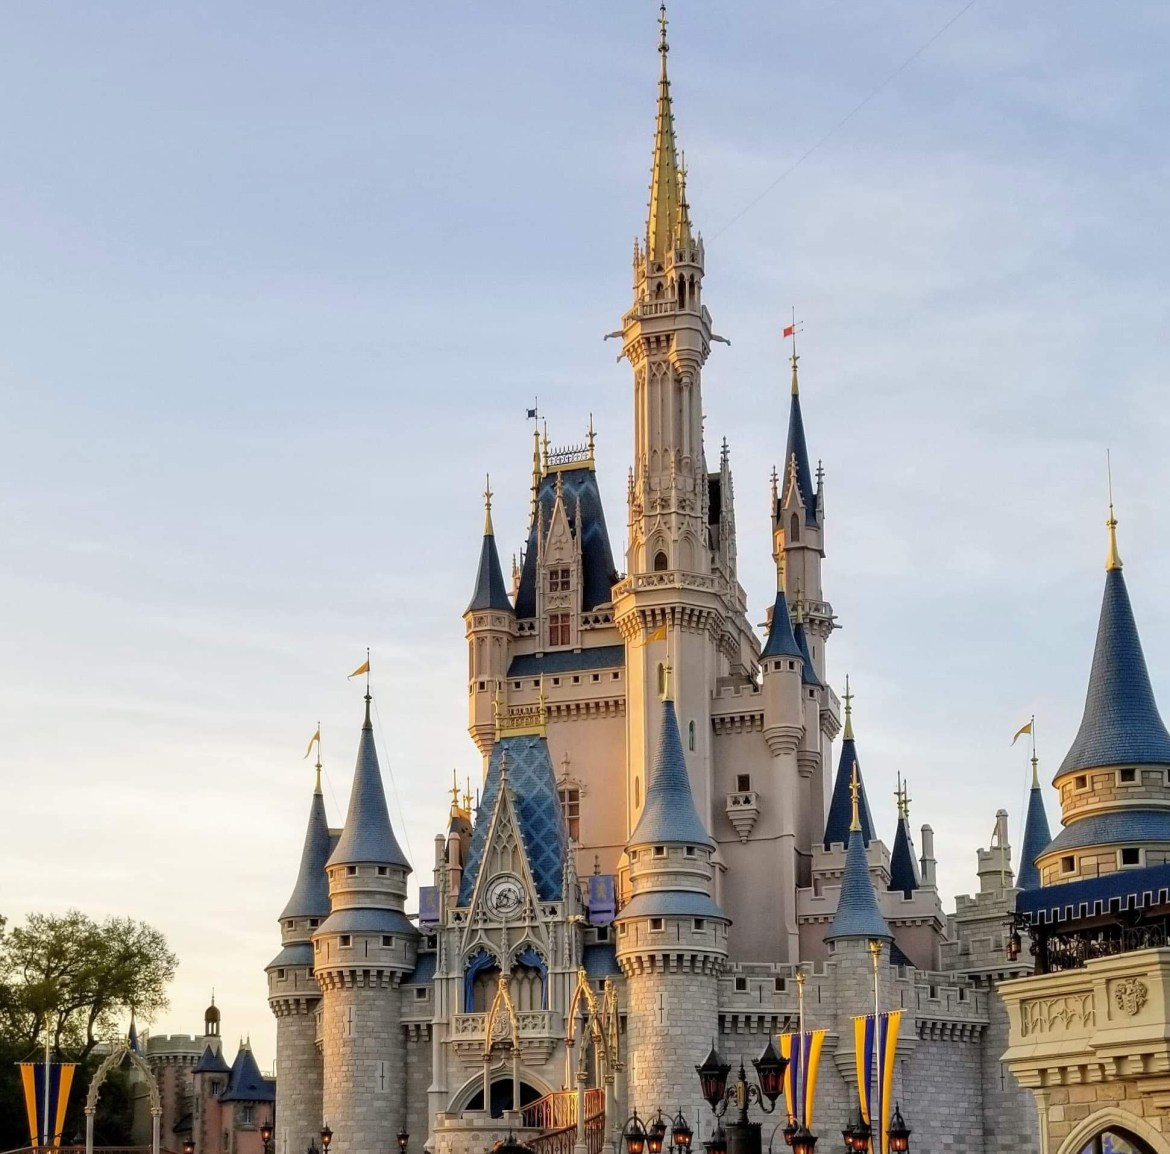 Walt Disney World Summer Vacation Packages Just Released Including Free Dining